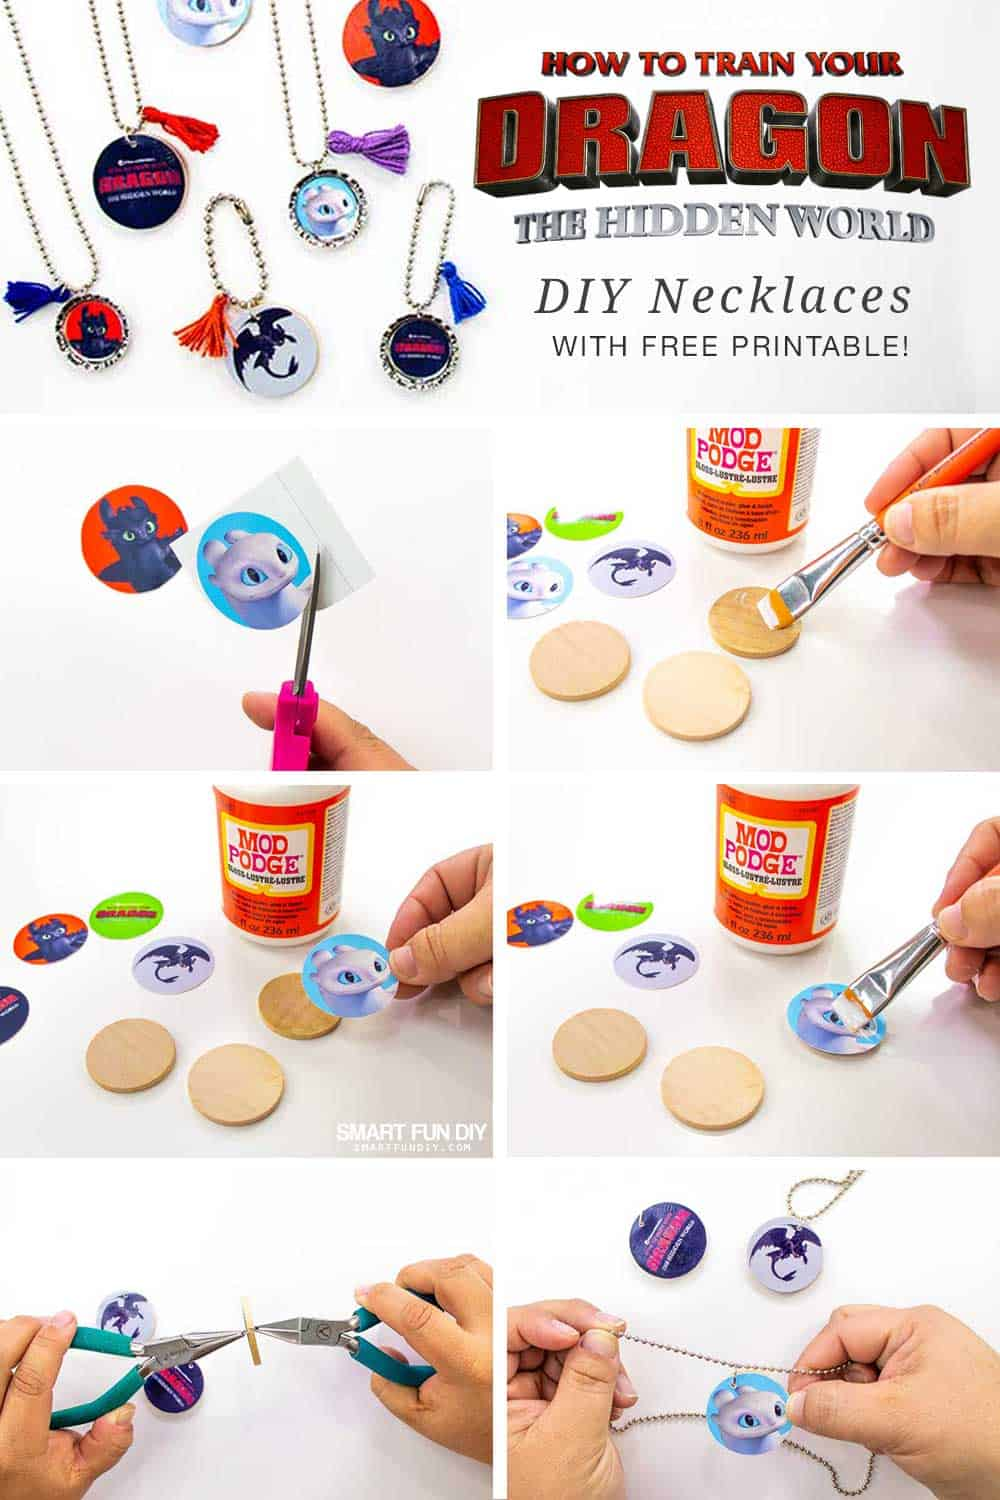 long pin graphic with steps to create neckalces using wood discs and free printables from How to Train Your Dragon movie